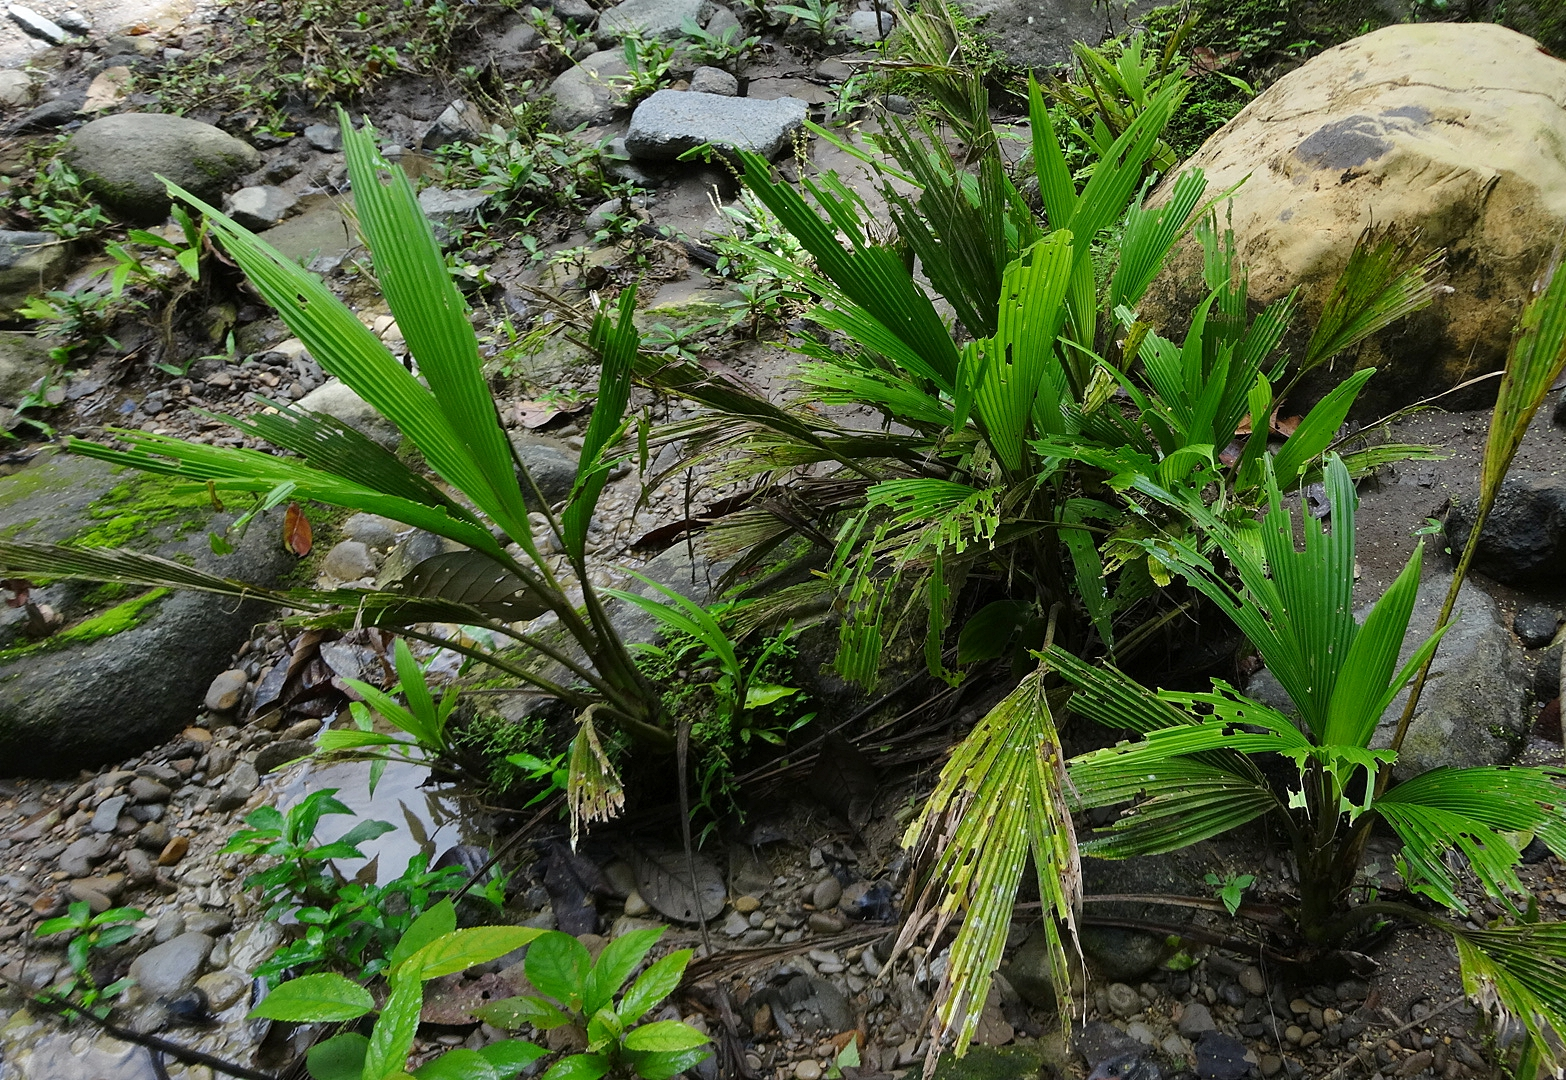 Even fairly robust rheophytes can get thrashed by flooding as a result of severe tropical storms. A streamside colony of an otherwise nice-looking, smallish  Dicranopygium sp . in tatters following a series of violent summer and fall storms along the Caribbean coast of Costa Rica in 2018. Plants located closer to the center of the stream at this site were completely stripped of their leaves.